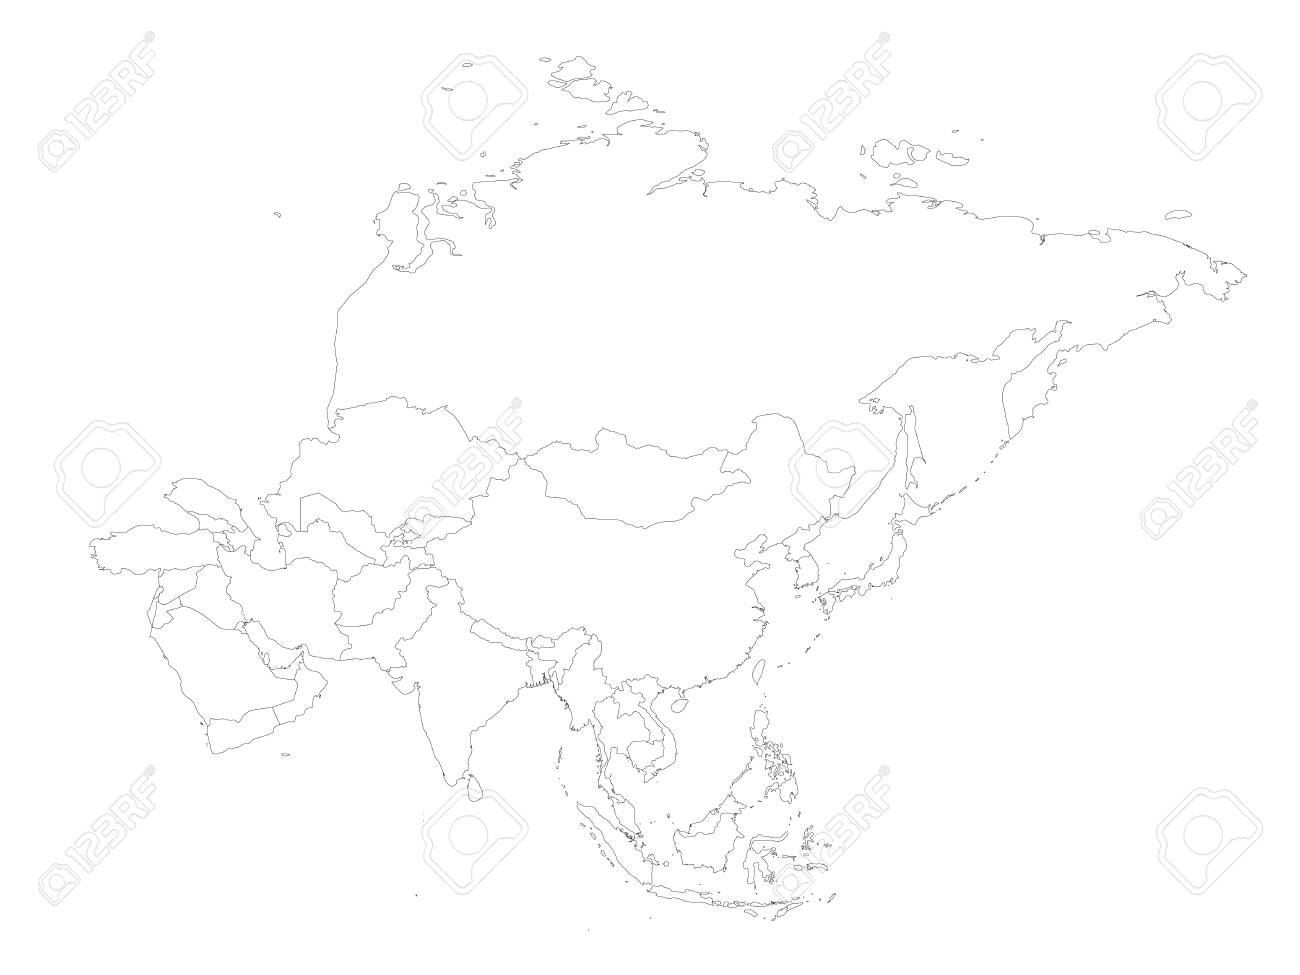 Image of: Blank Political Outline Map Of Asia Continent Vector Illustration Royalty Free Cliparts Vectors And Stock Illustration Image 96106804